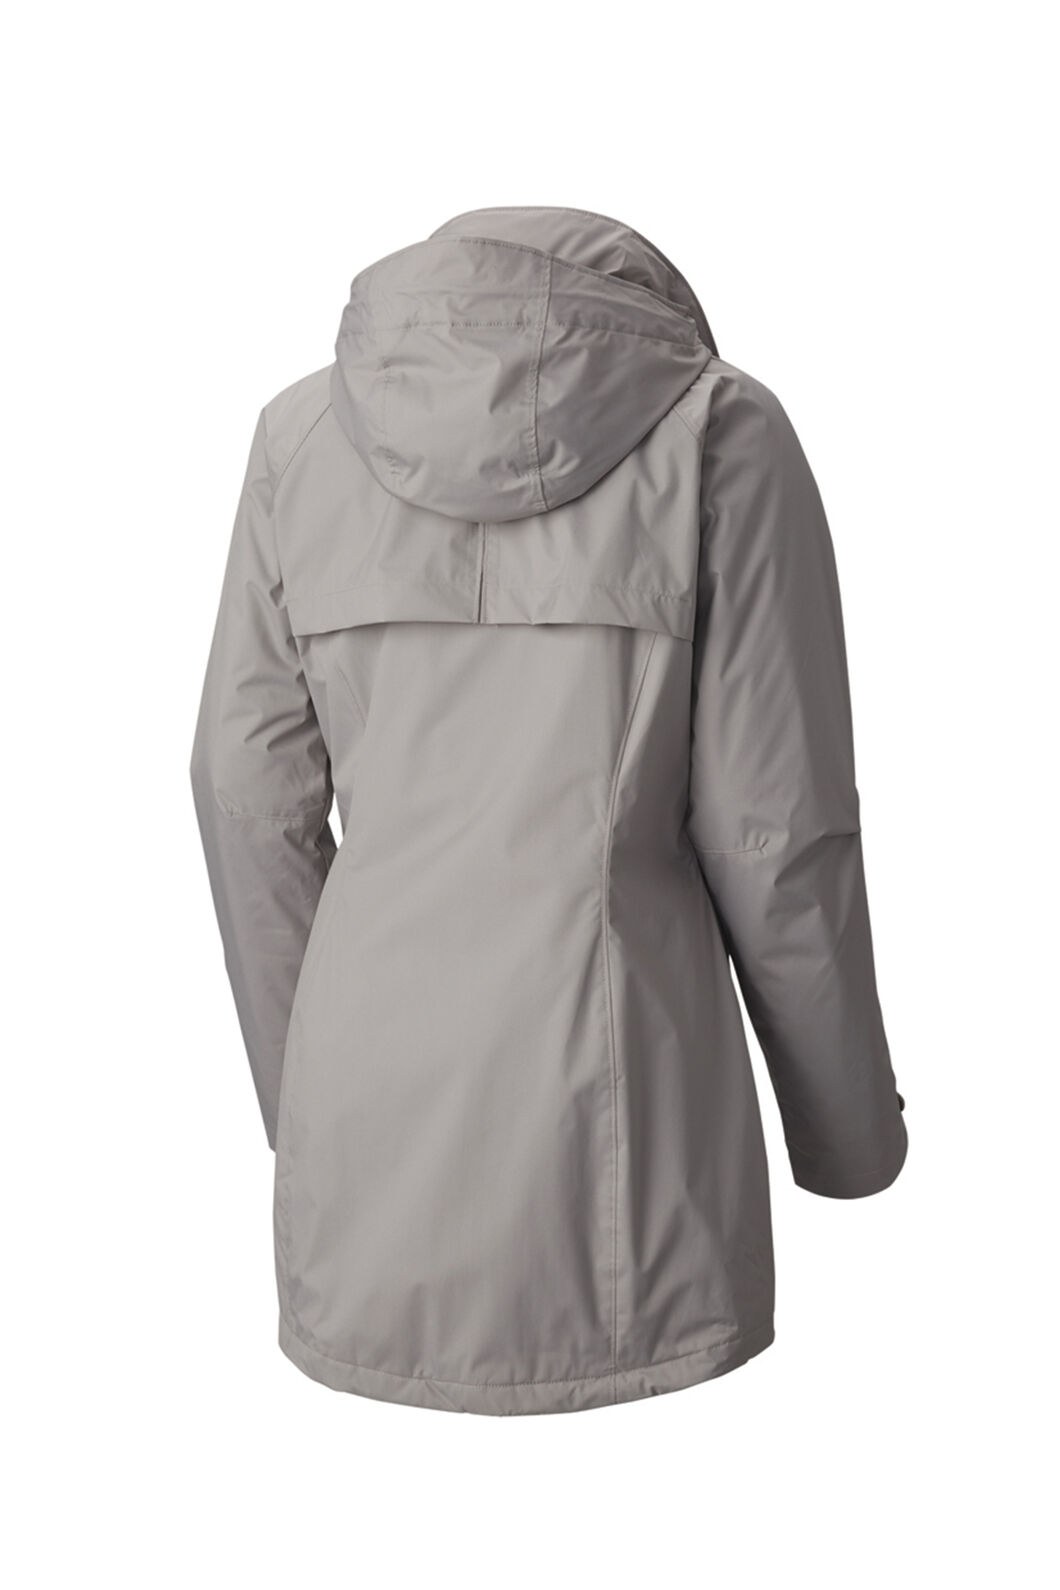 7a87d638ed7 Images. Columbia Women s Lookout Crest Jacket ...